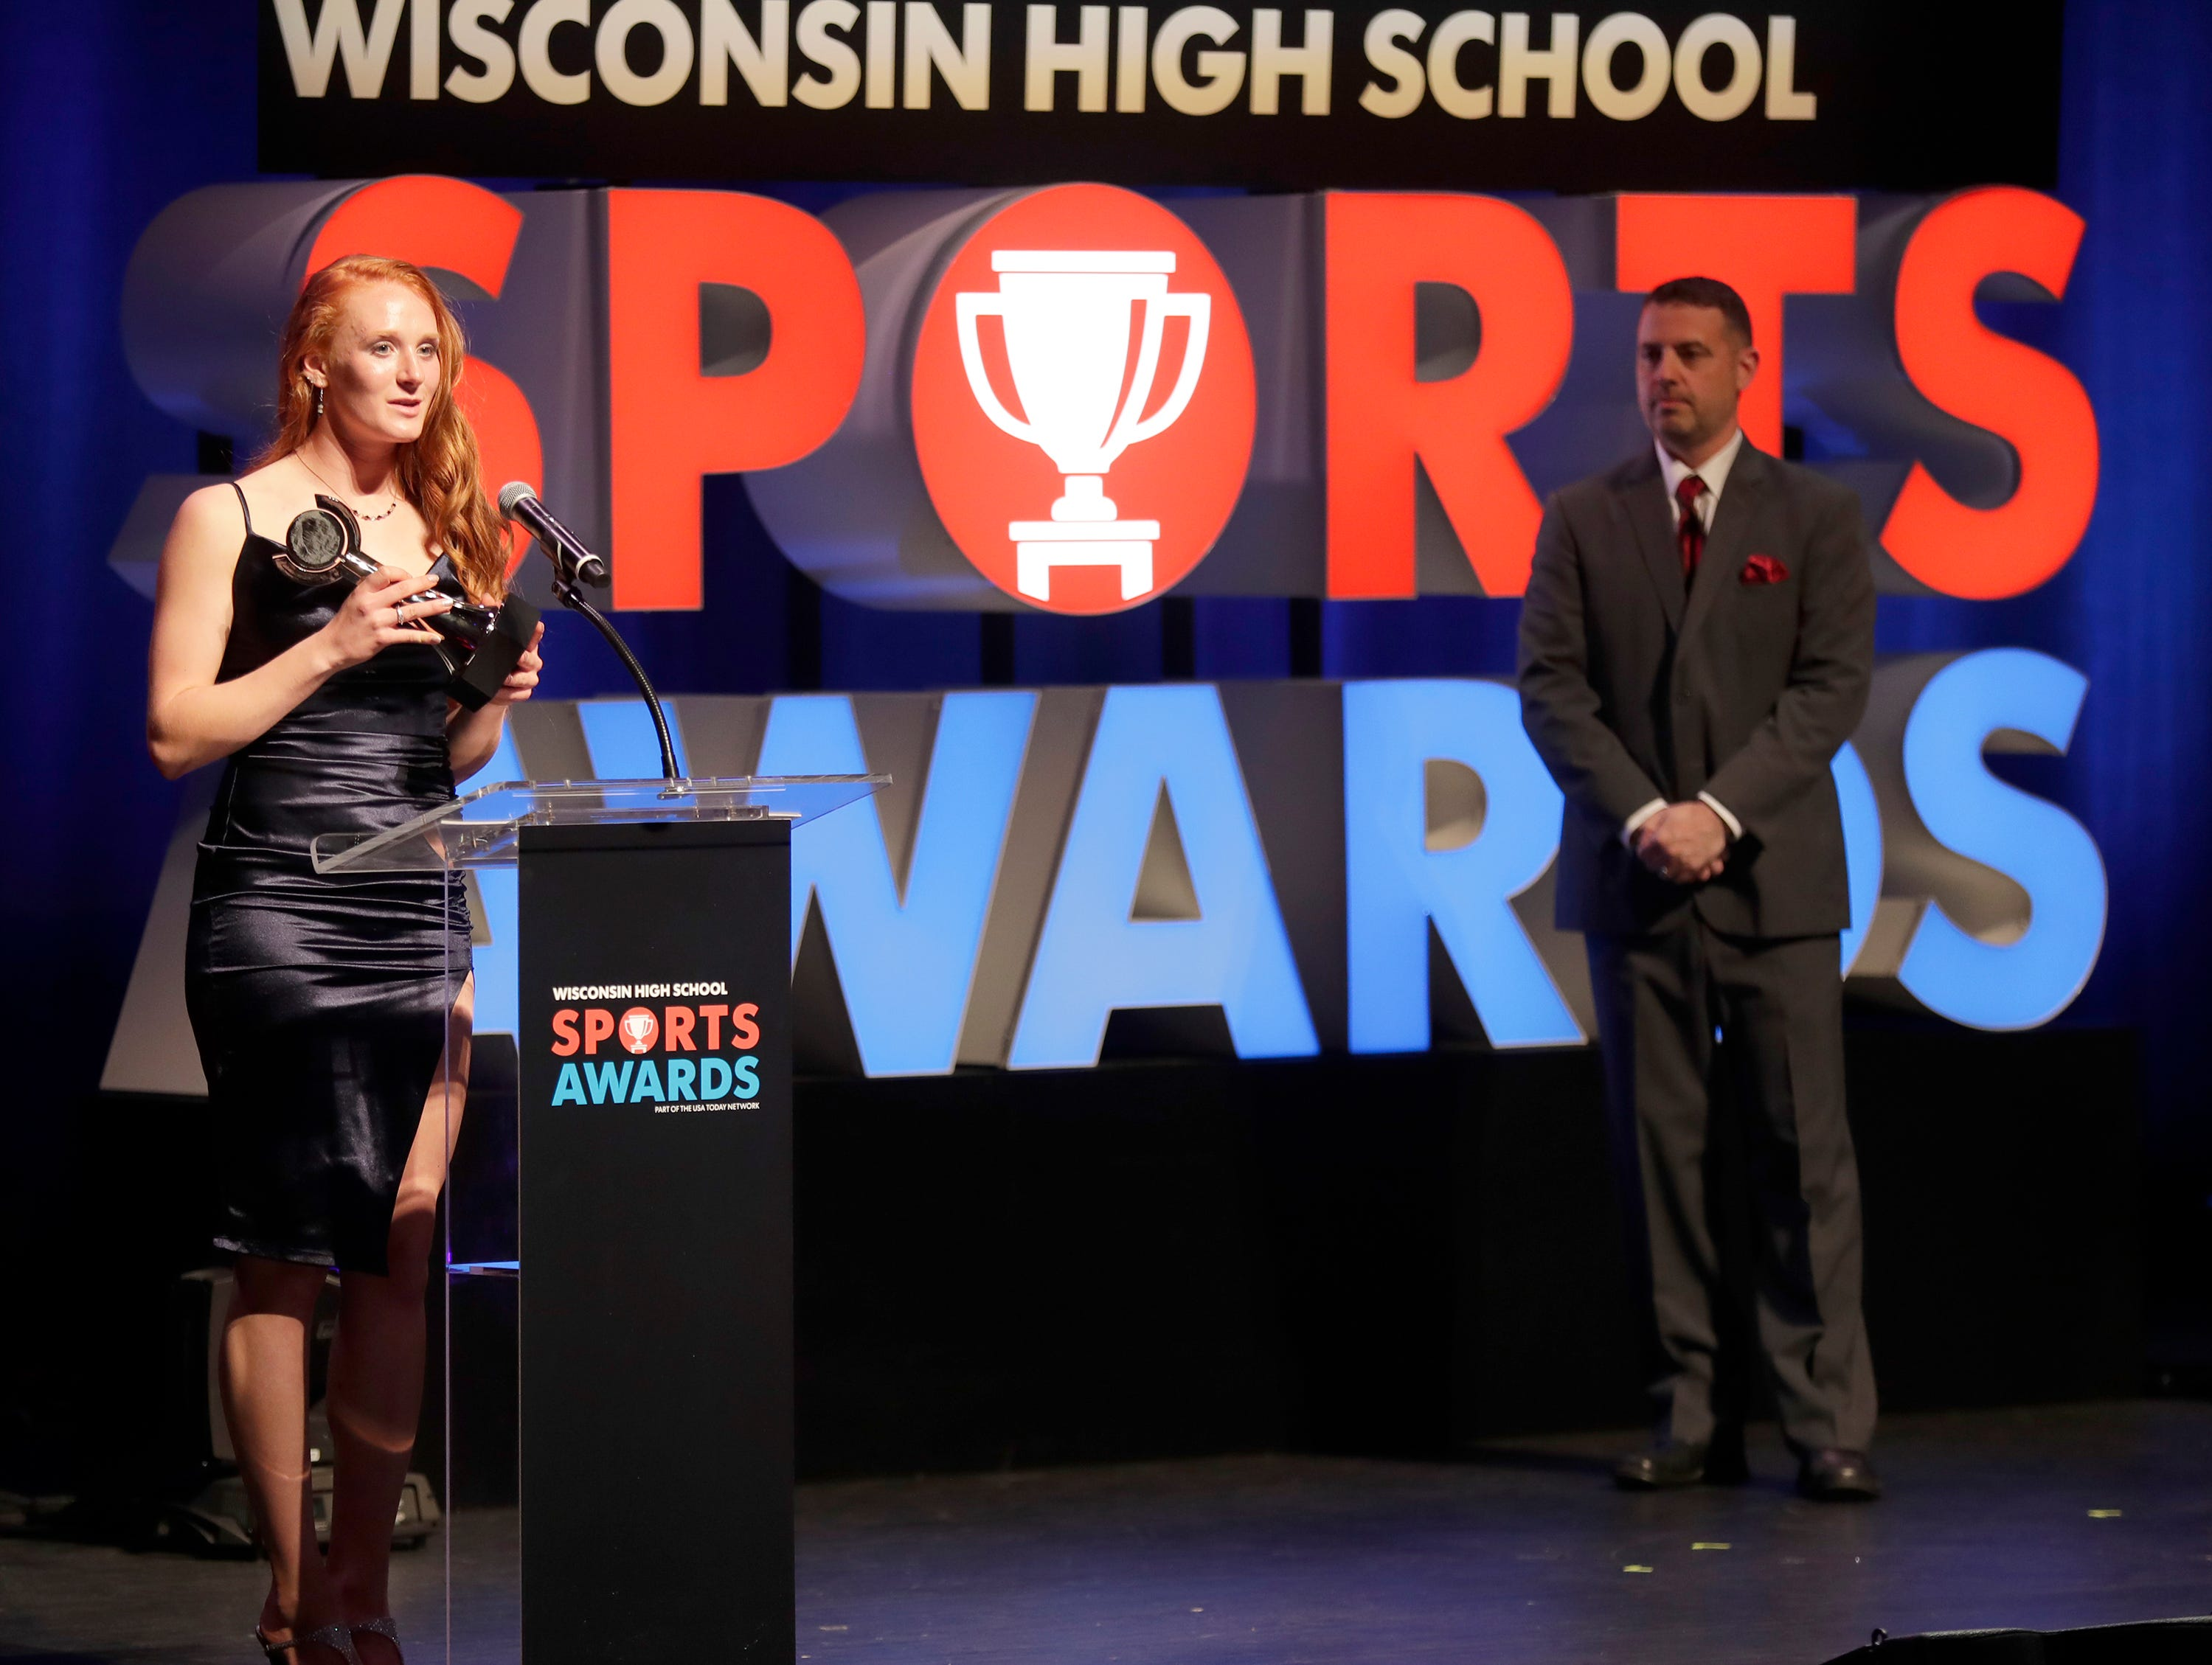 Softball Player of the Year, Oshkosh north's Syd Supple during the Wisconsin High School Sports Awards show at the Fox Cities Performing Arts Center on Wednesday, May 8, 2019, in Appleton, Wis. Olympic champion Michael Phelps was the guest speaker. The annaul event was presented by USA TODAY NETWORK-Wisconsin. 